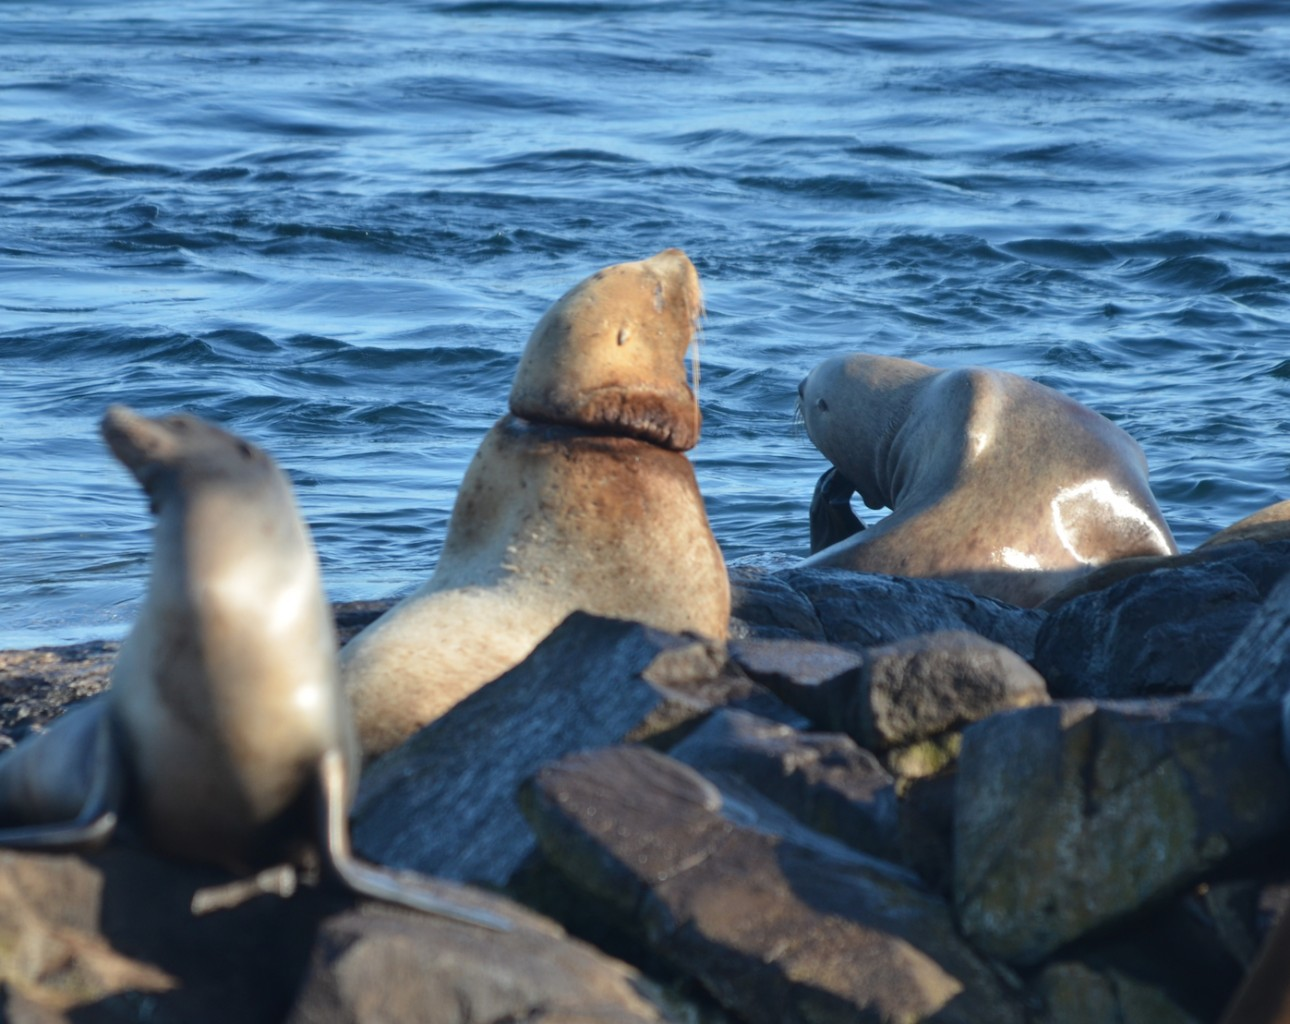 The Stellers Sea Lion in the top middle of this photograph, has something around its neck and cutting into its' flesh.